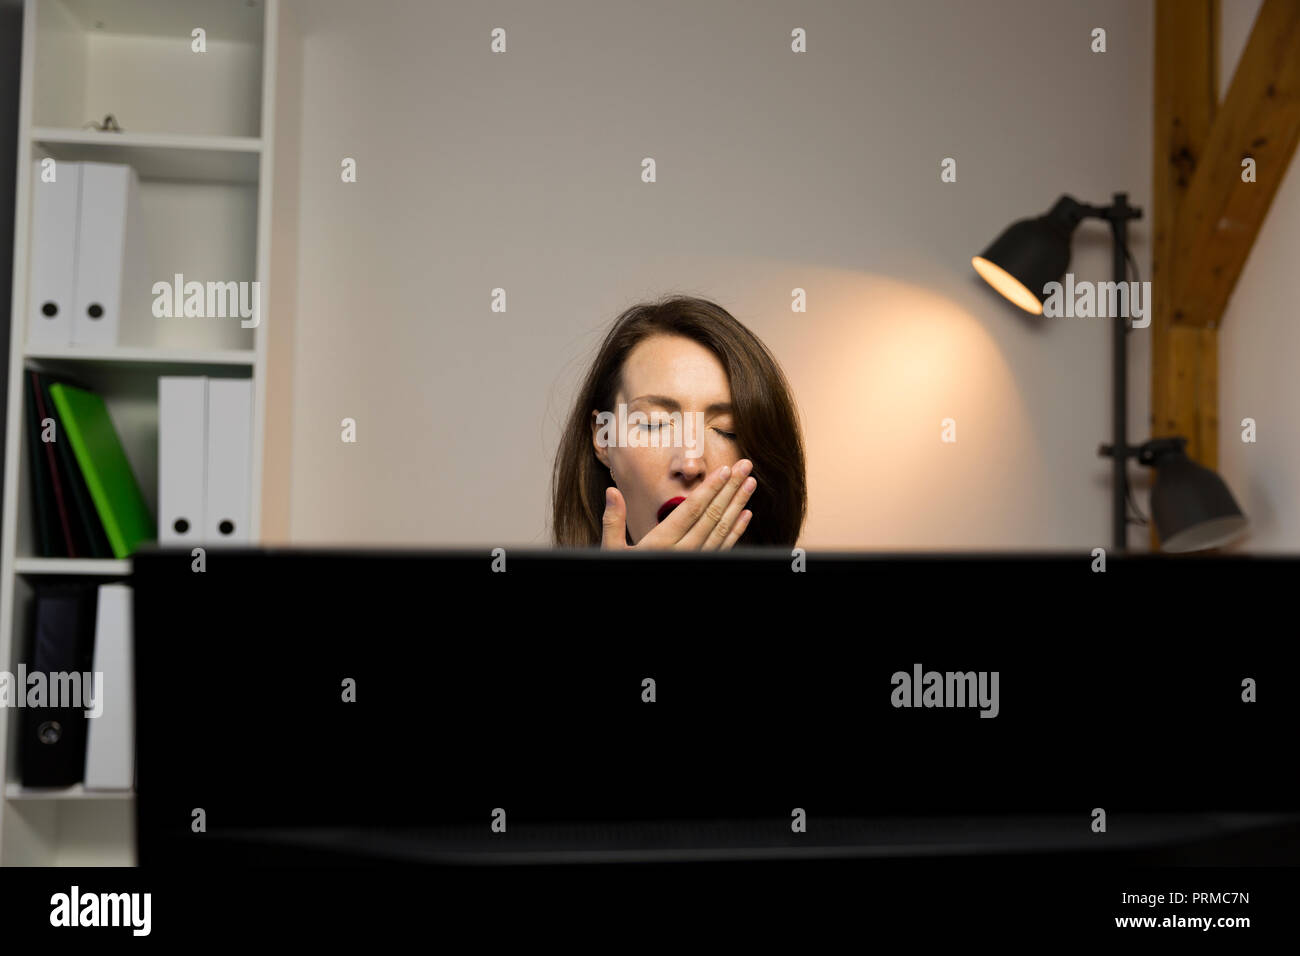 Young pretty woman tired and exhausted of work next to computer. Working late concept - Stock Image